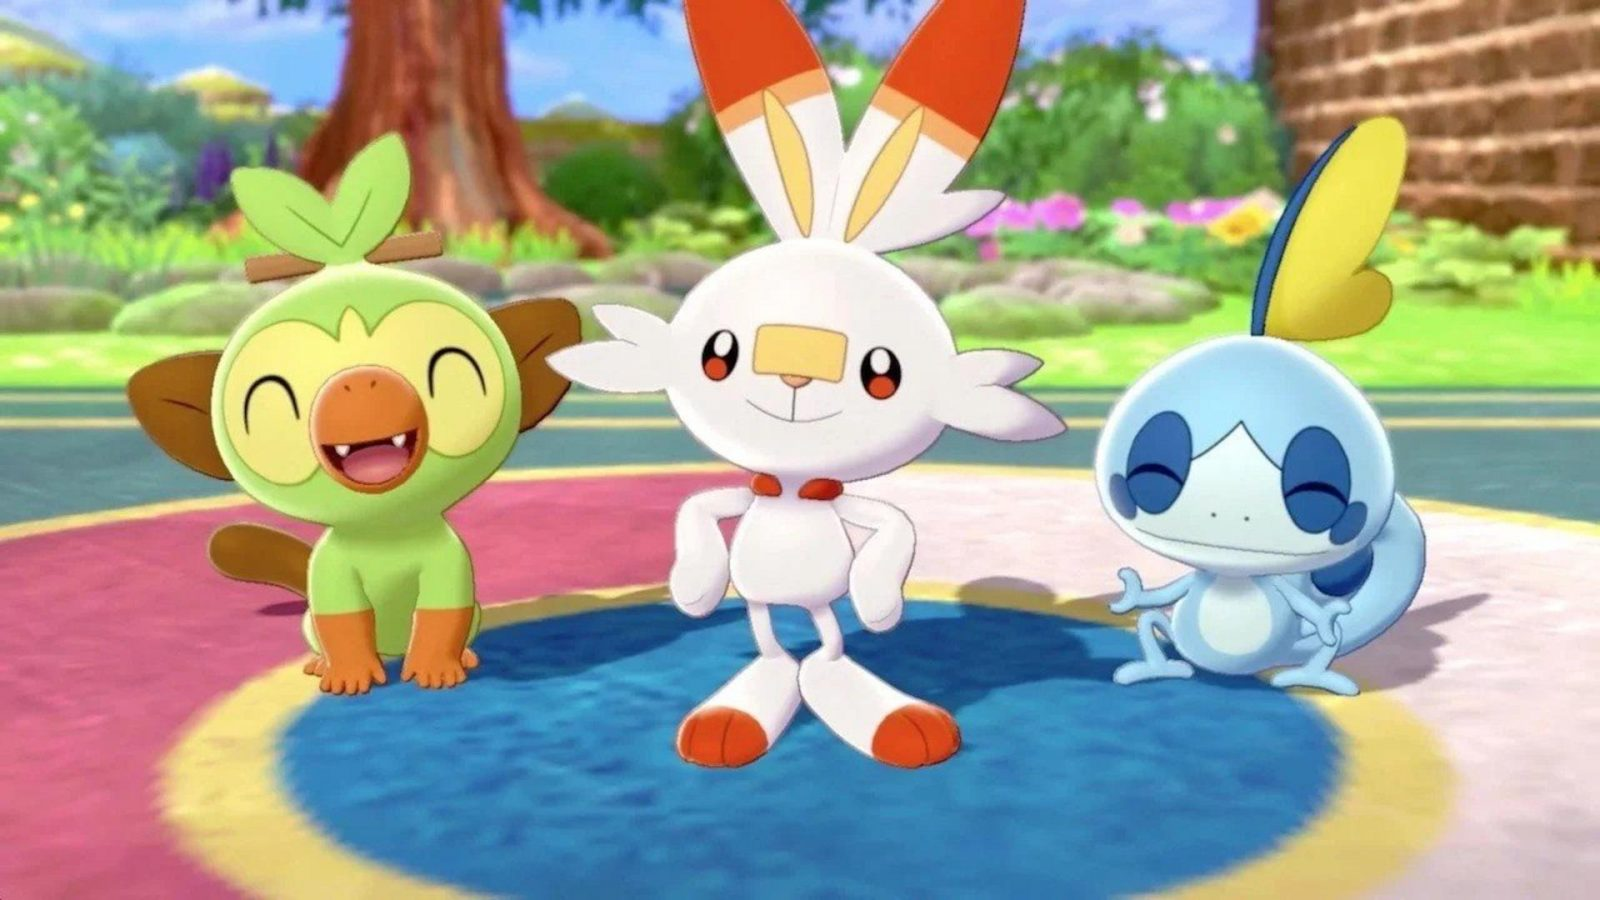 Pokemon Sword and Shield Review: The Promising Dawn of a New Generation